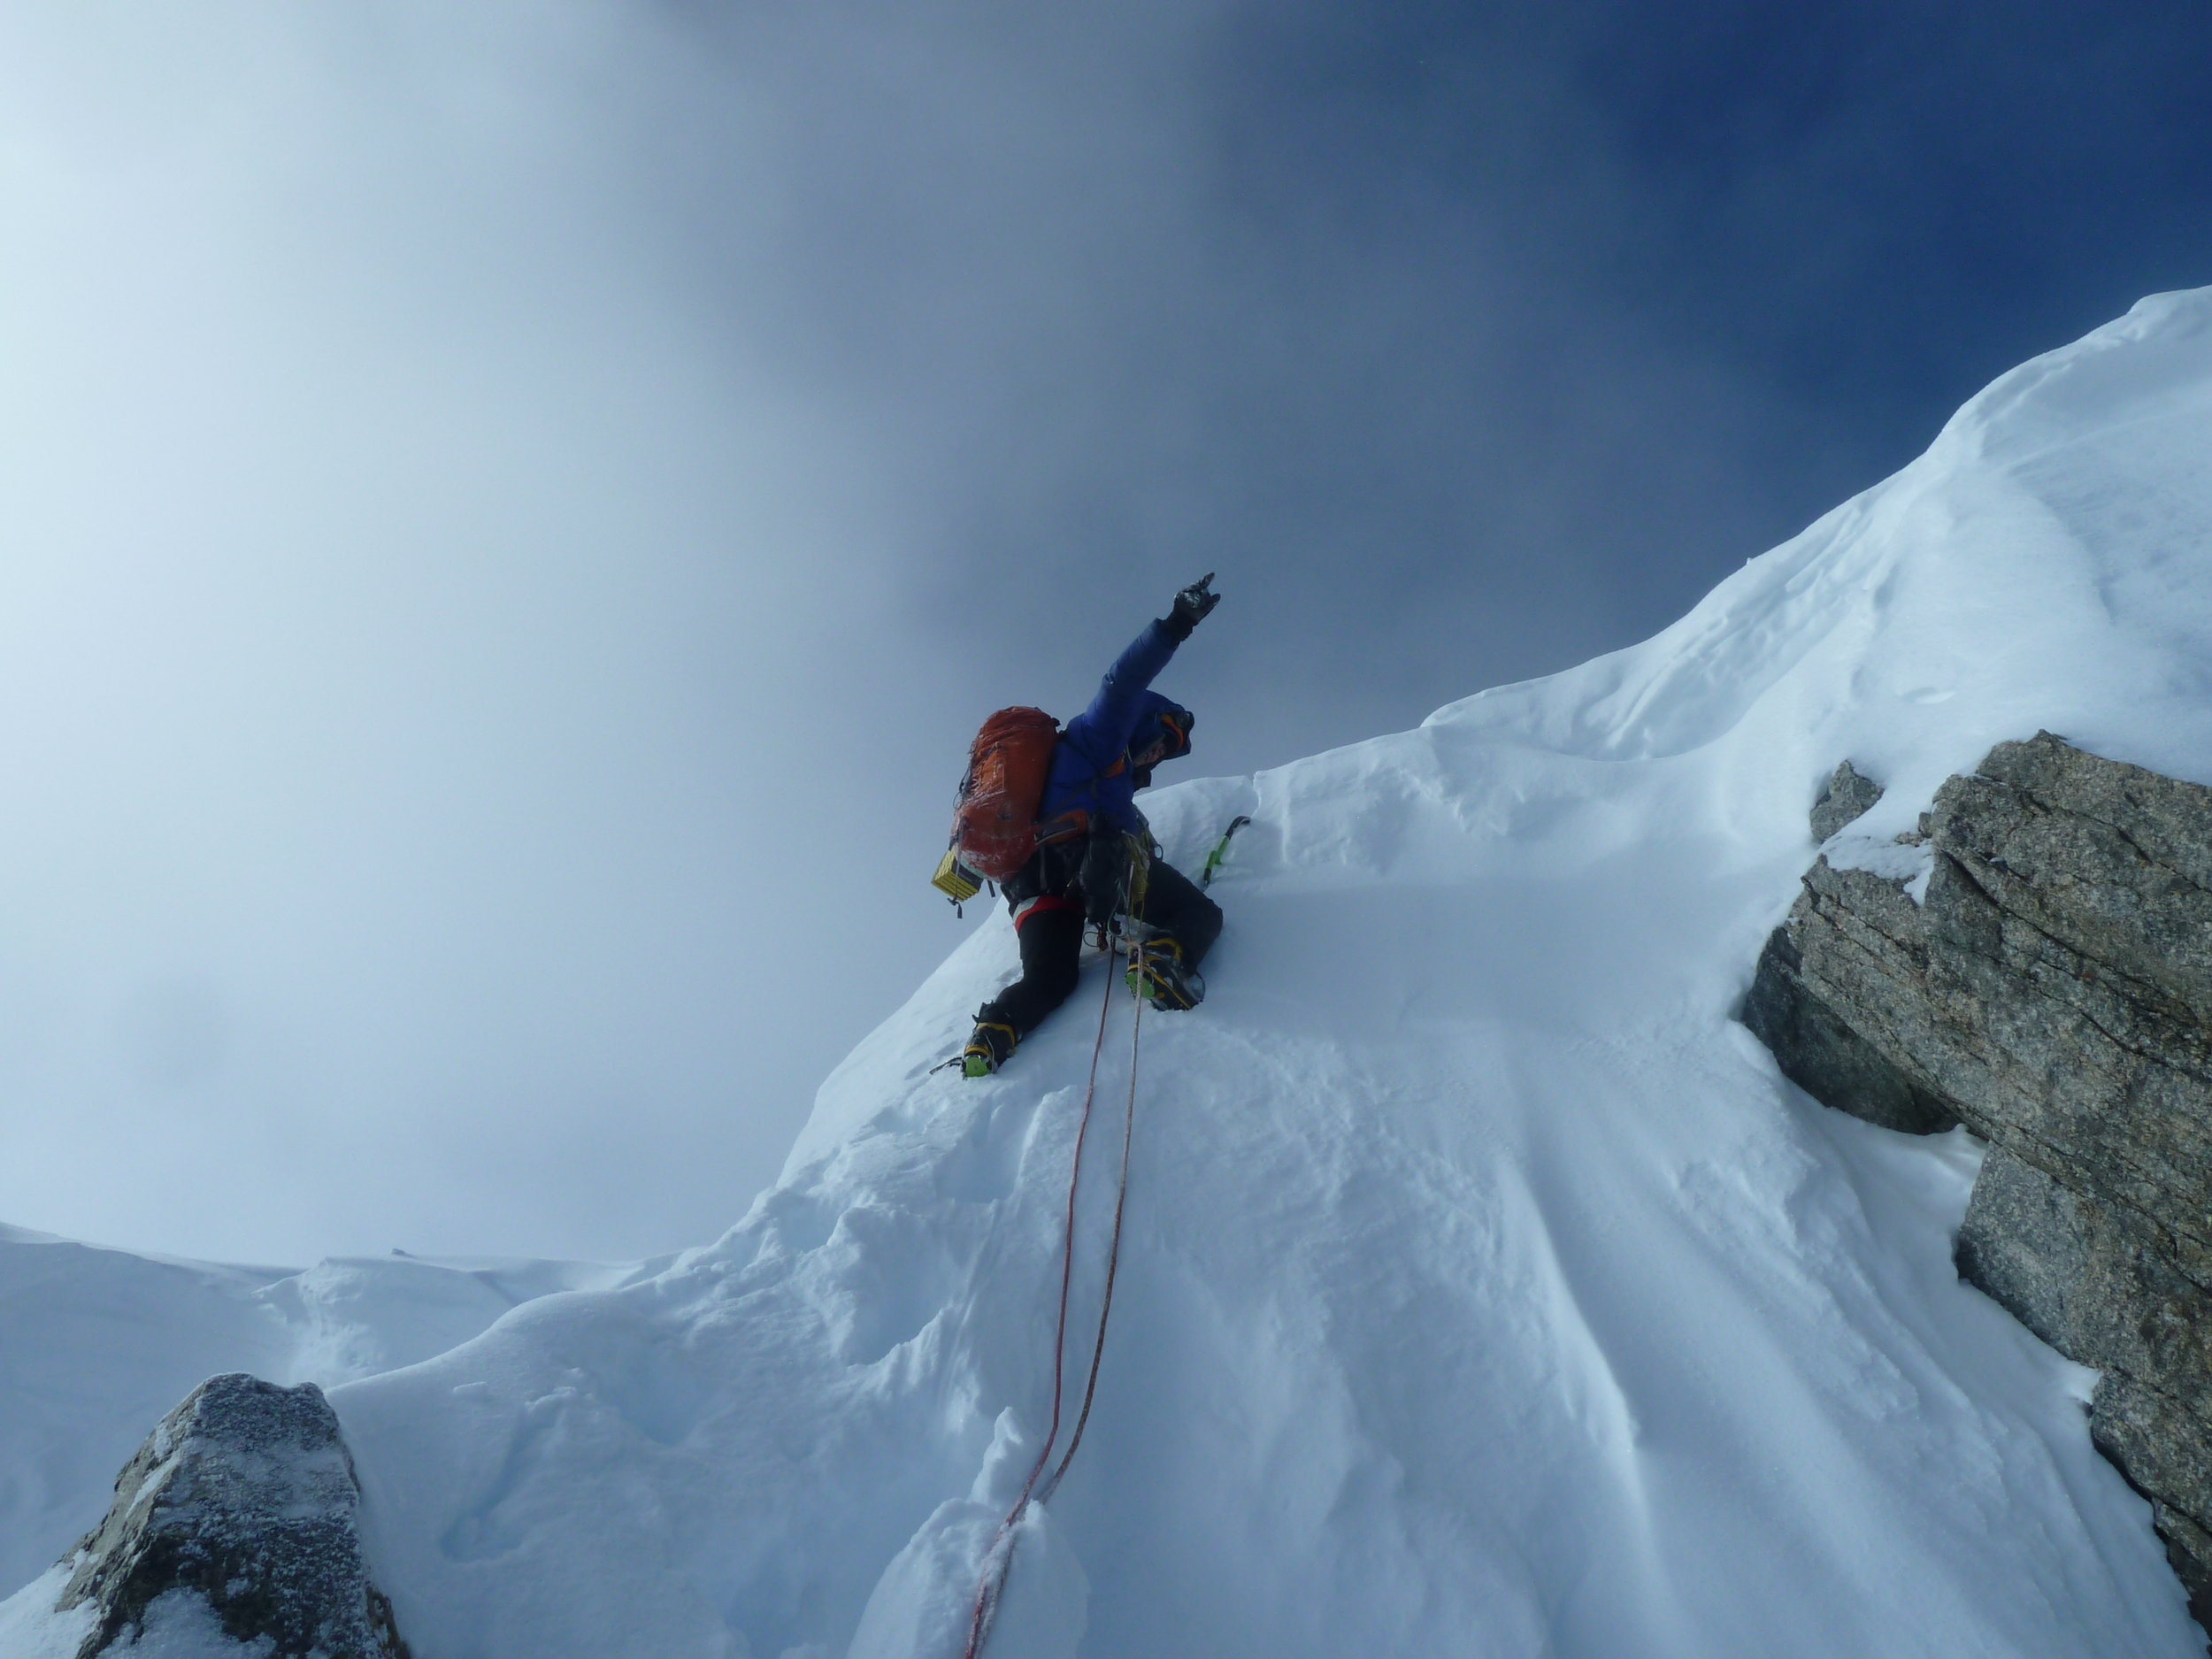 pete graham on the walker spur, winter ascent, grandes jorasses, mont blanc massif. Chamonix.